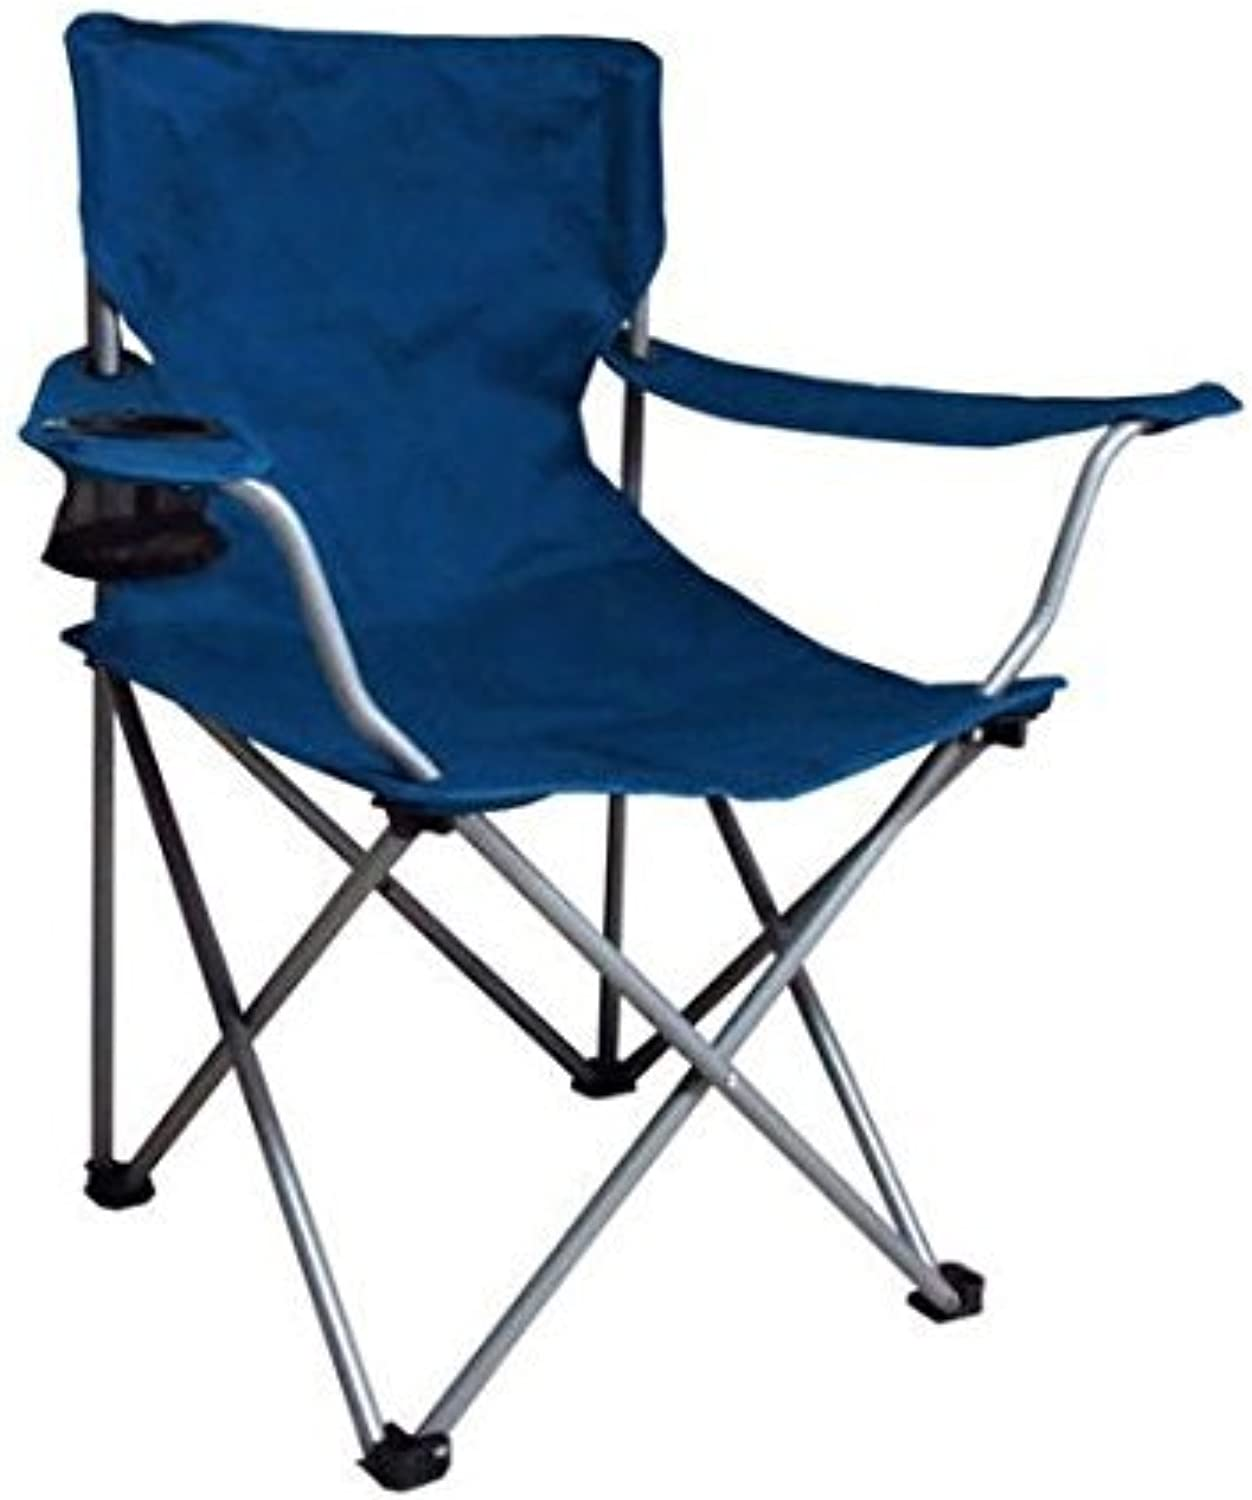 Portable Camp Chair,Folding Camping Recliner Hiking Sports Hunting Chairs Stool Compact Bag Convenient Storage Cup Holder